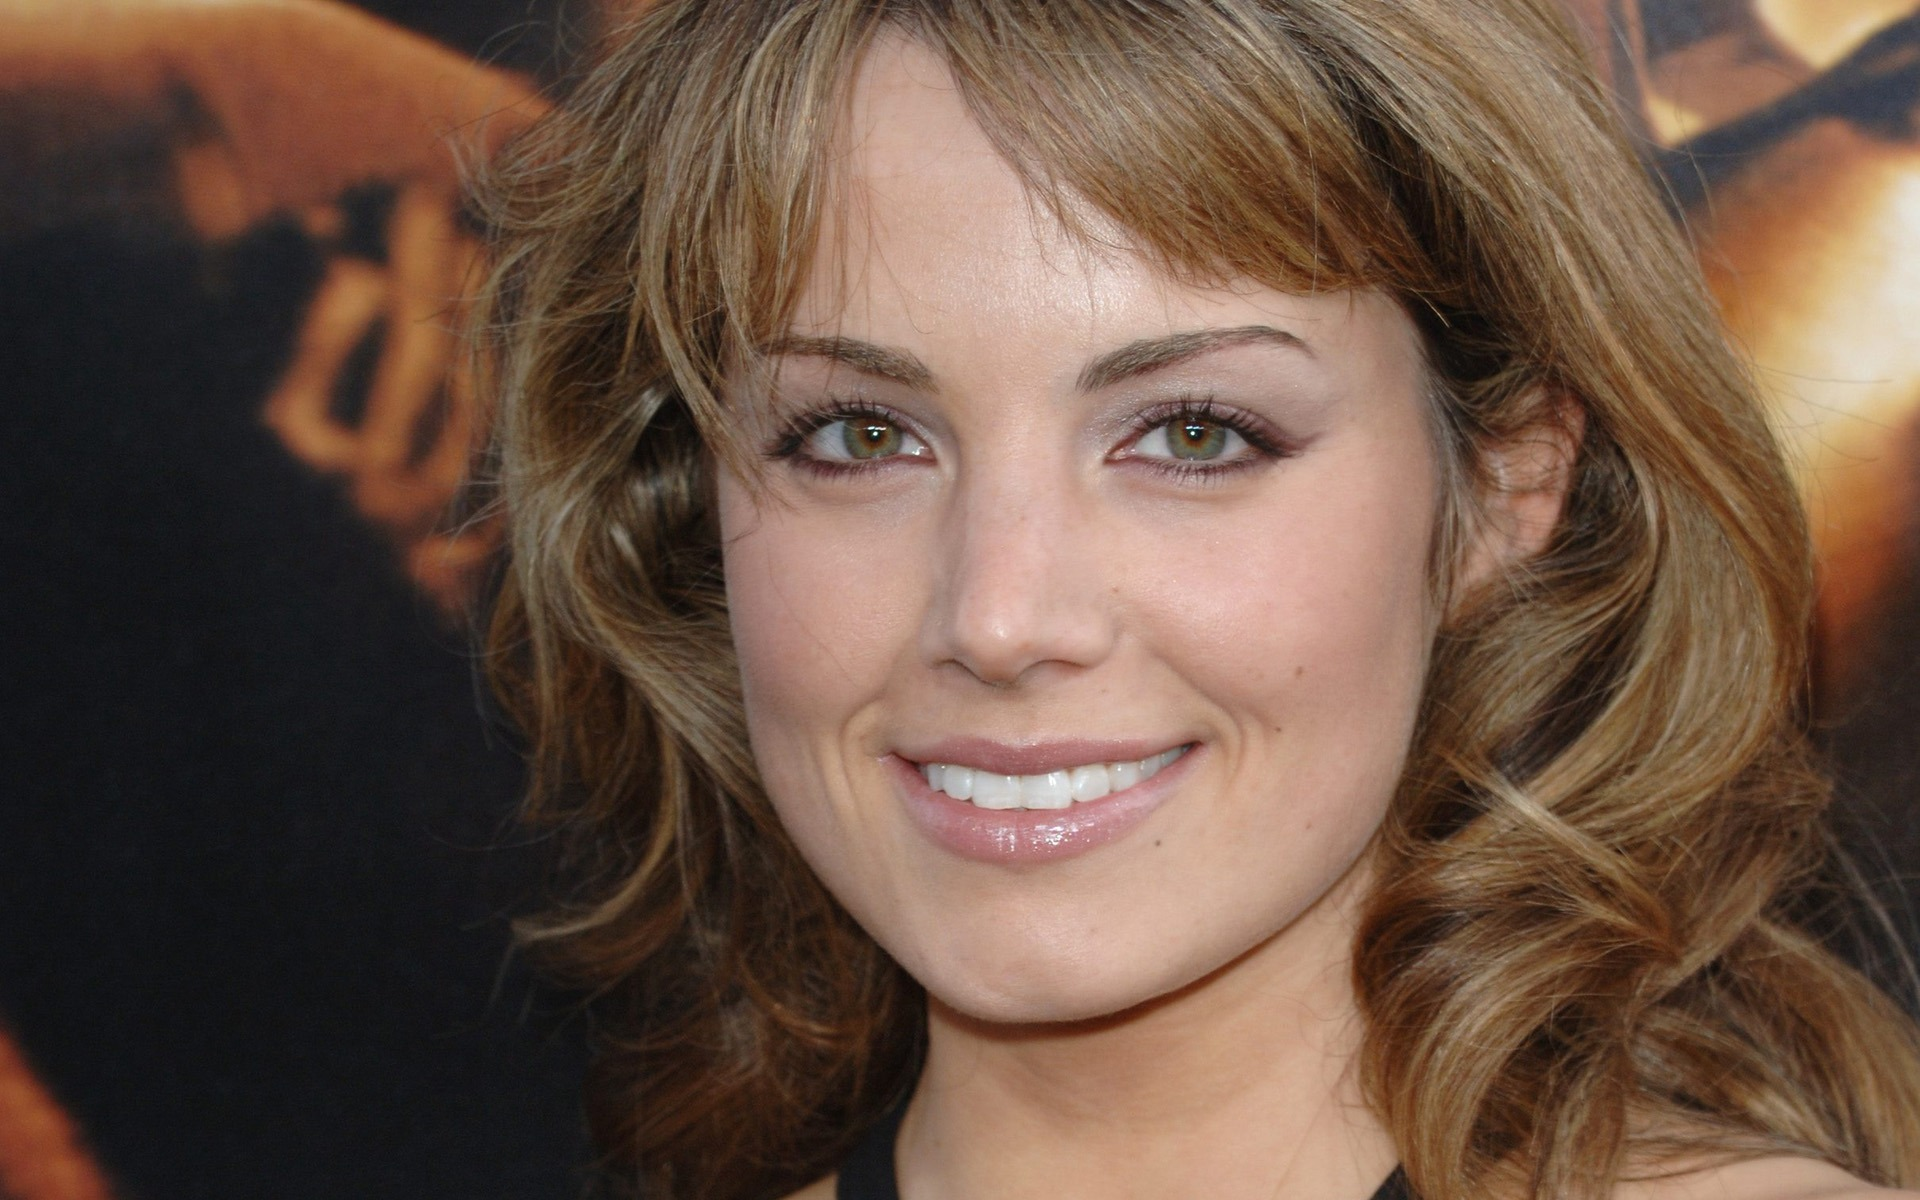 Actress Erica Durance to replace Laura Benanti in 'Supergirl'